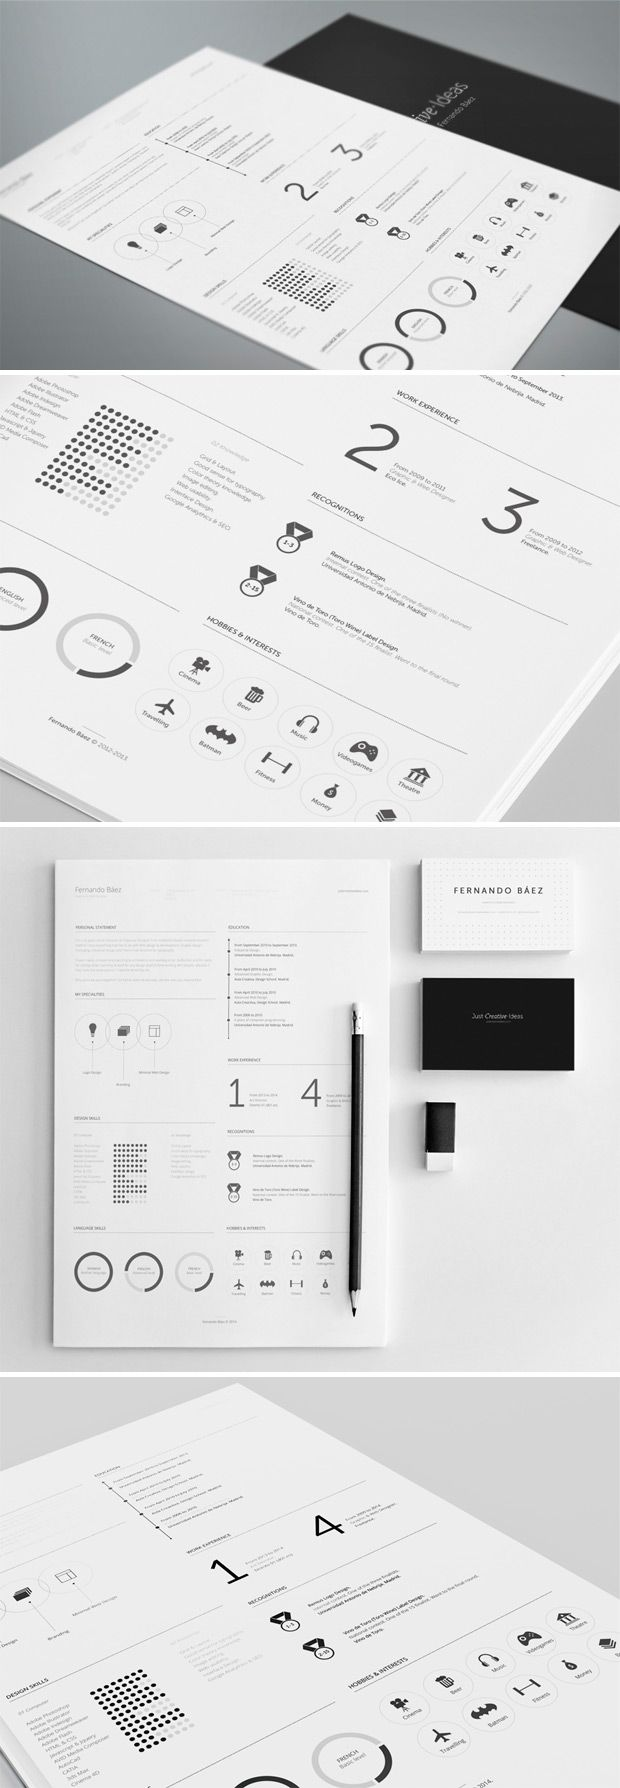 32 best CV\'s images on Pinterest | Cover letters, Creative resume ...